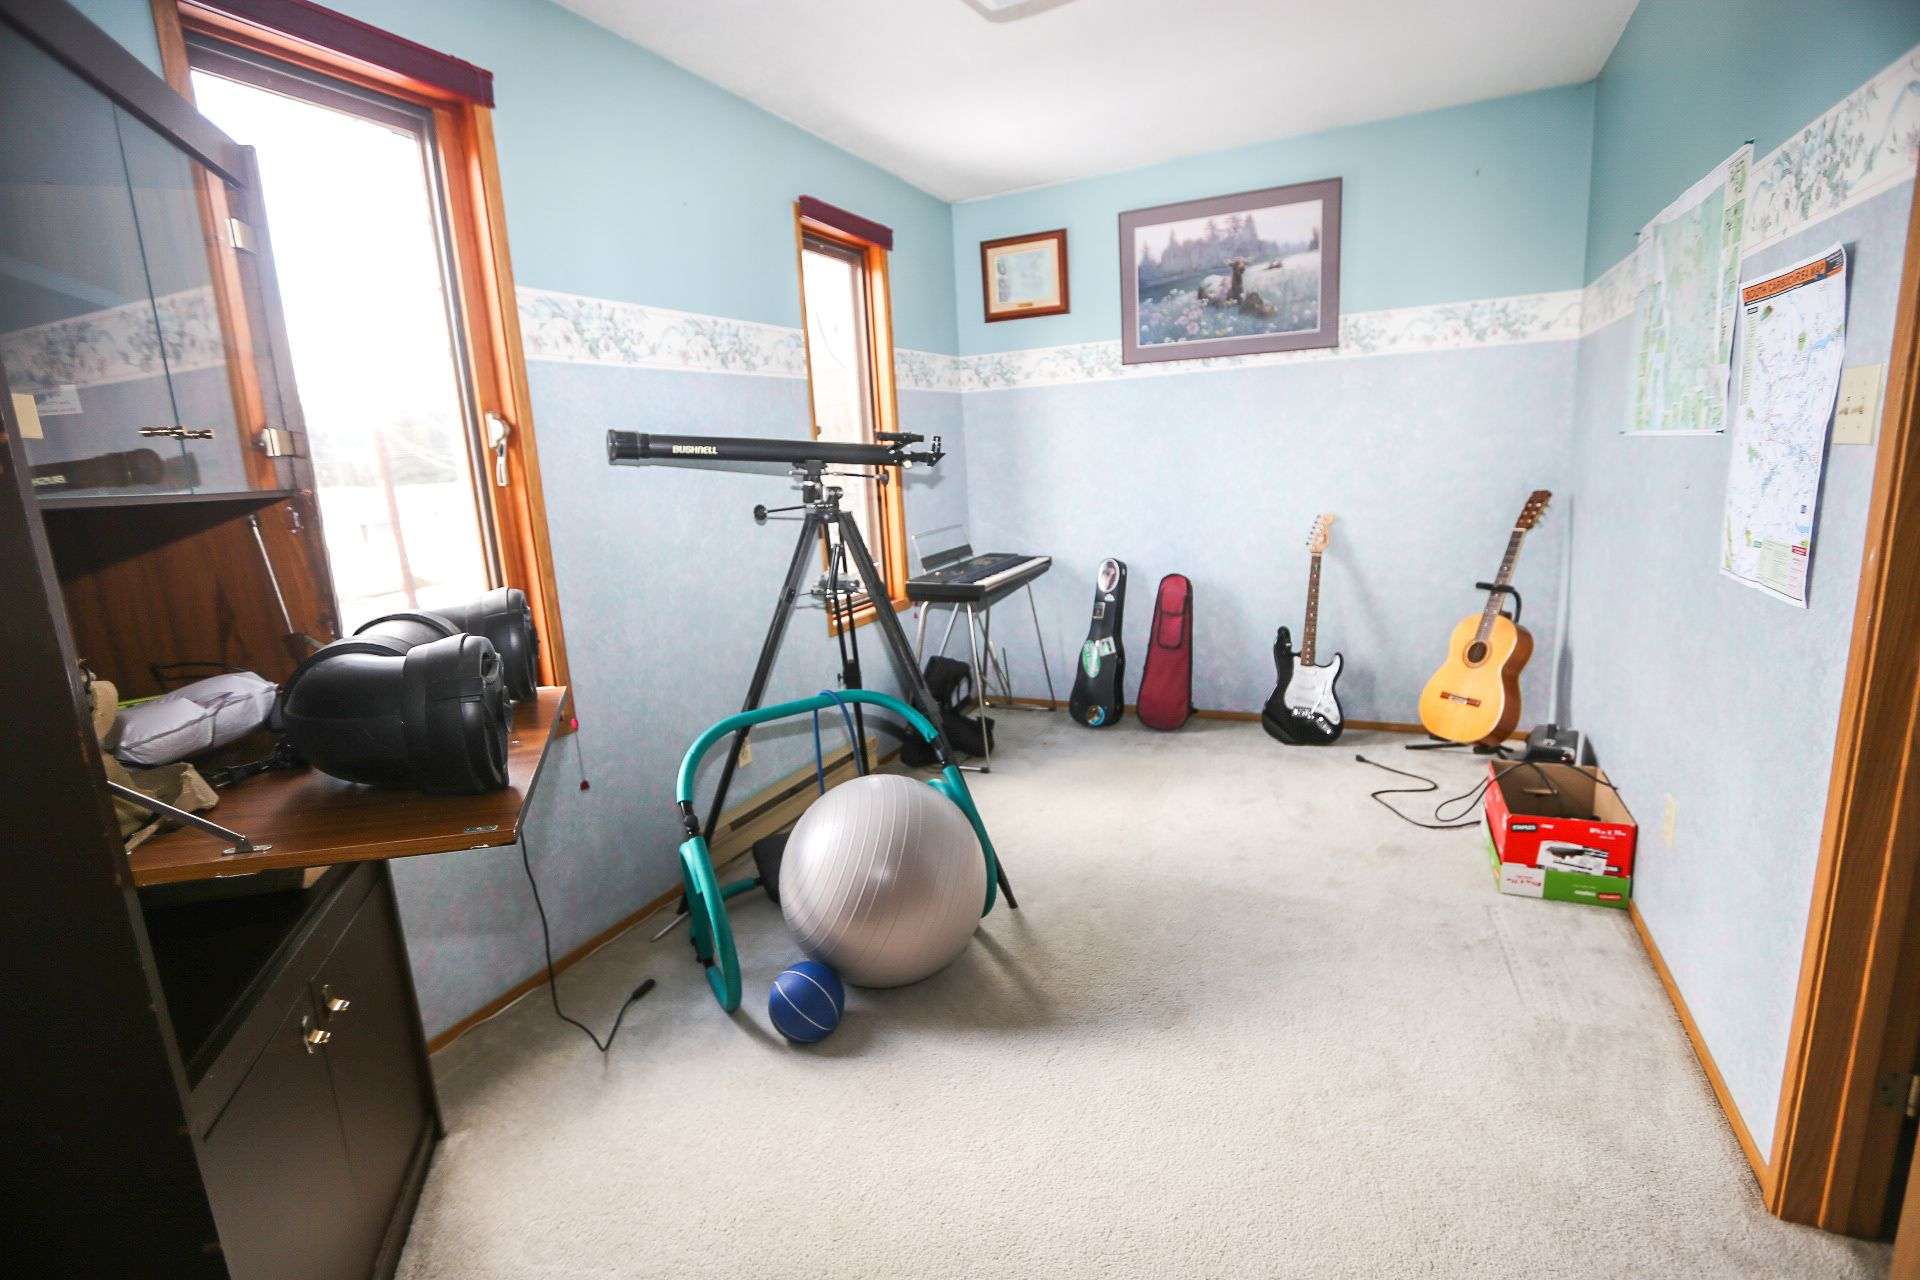 Photo 13: Photos: 434 ROBIN DRIVE: BARRIERE House for sale (NORTH EAST)  : MLS®# 160553